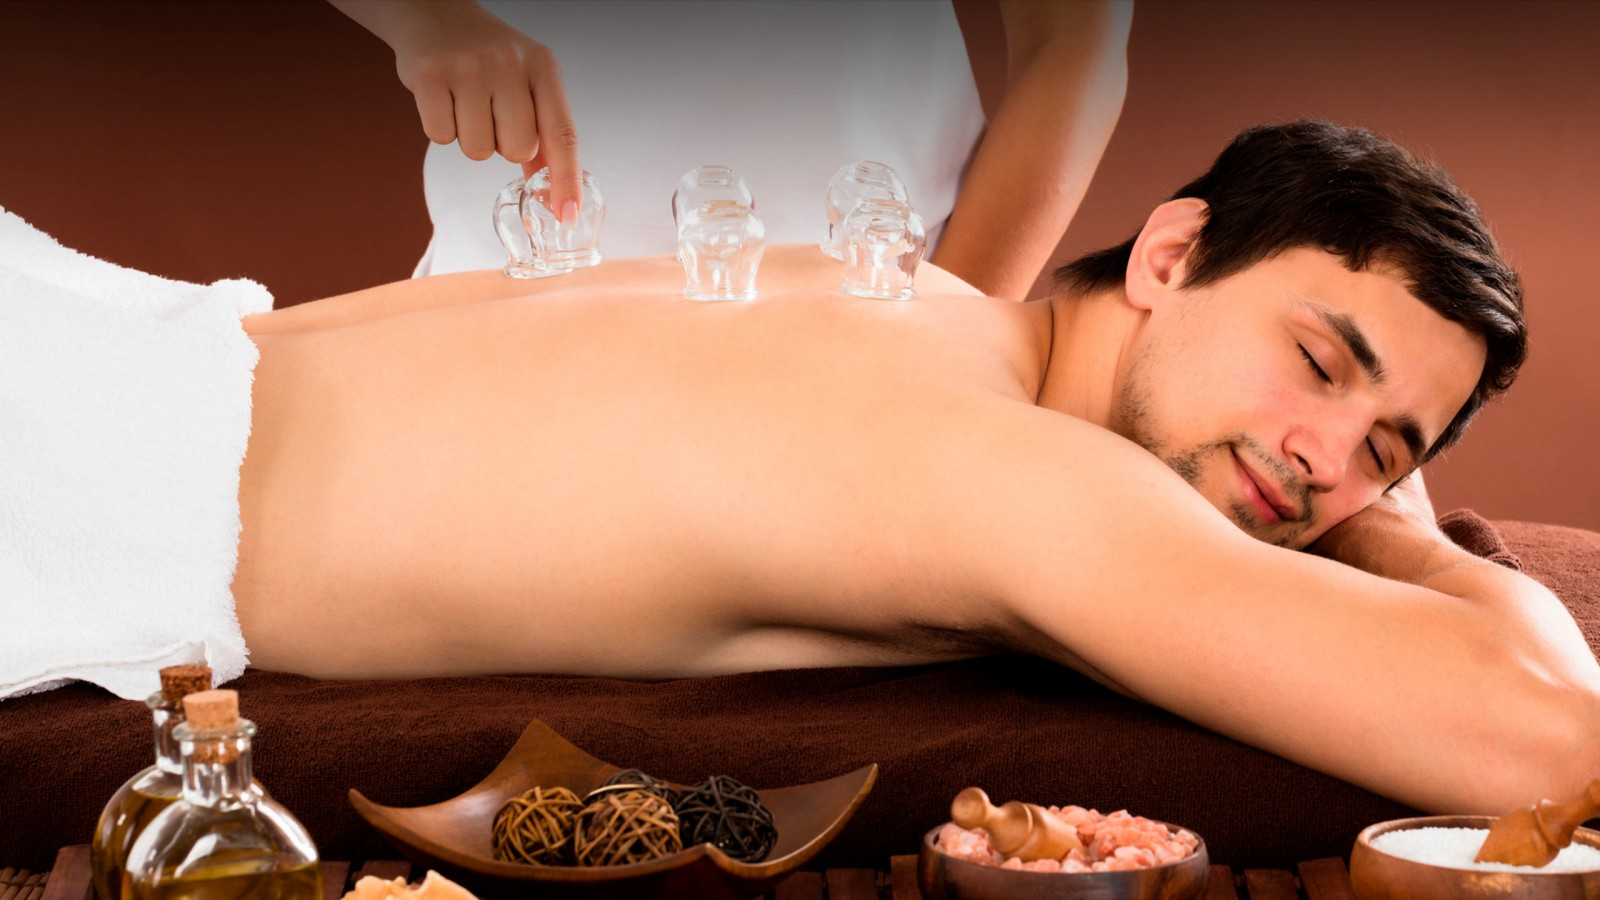 Aqualon Wellness | April Angebot: 45-minütige Schröpf-Wellnessmassage zum Sonderpreis